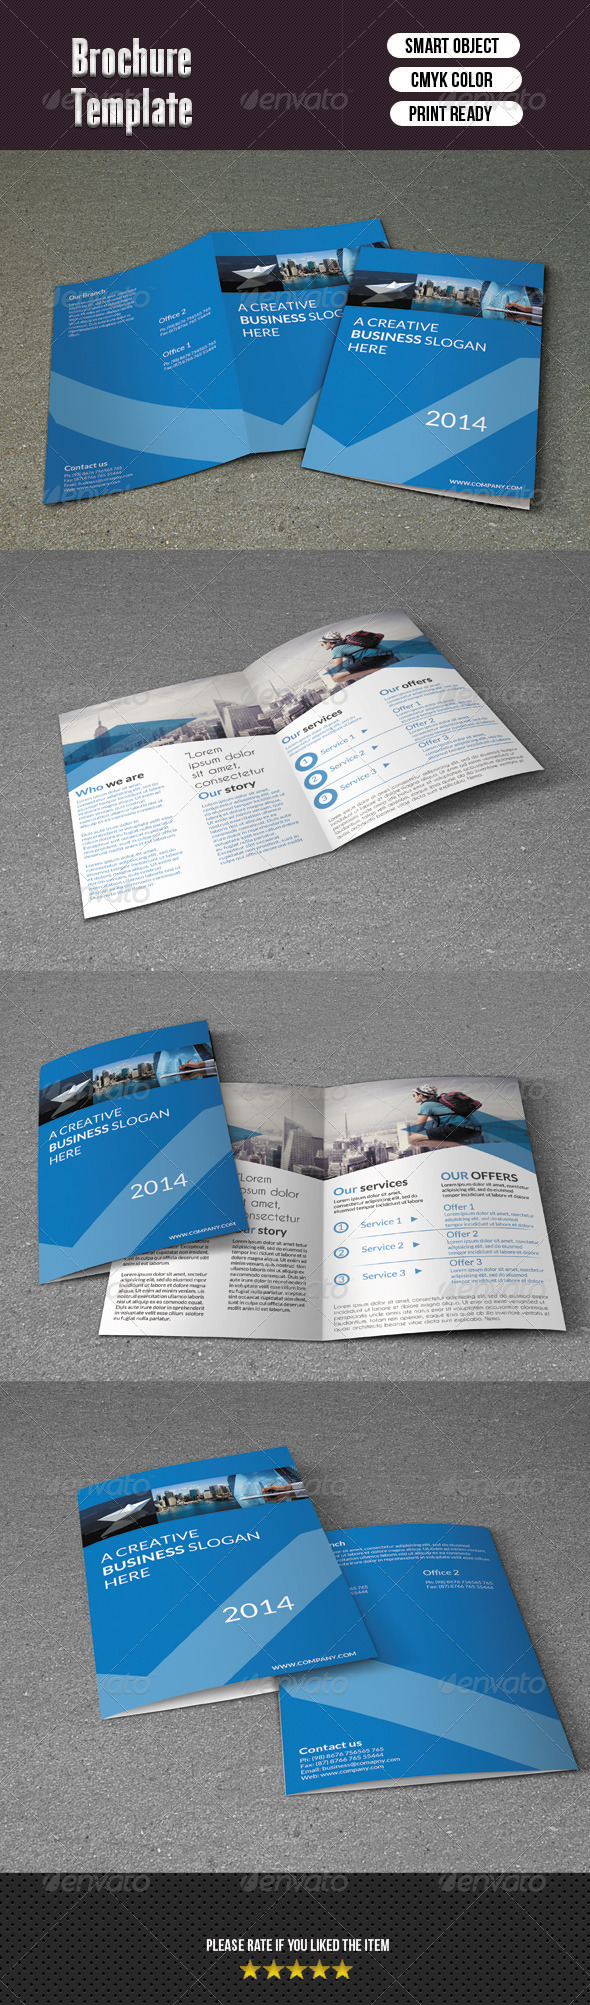 Corporate Bifold Template - Corporate Brochures